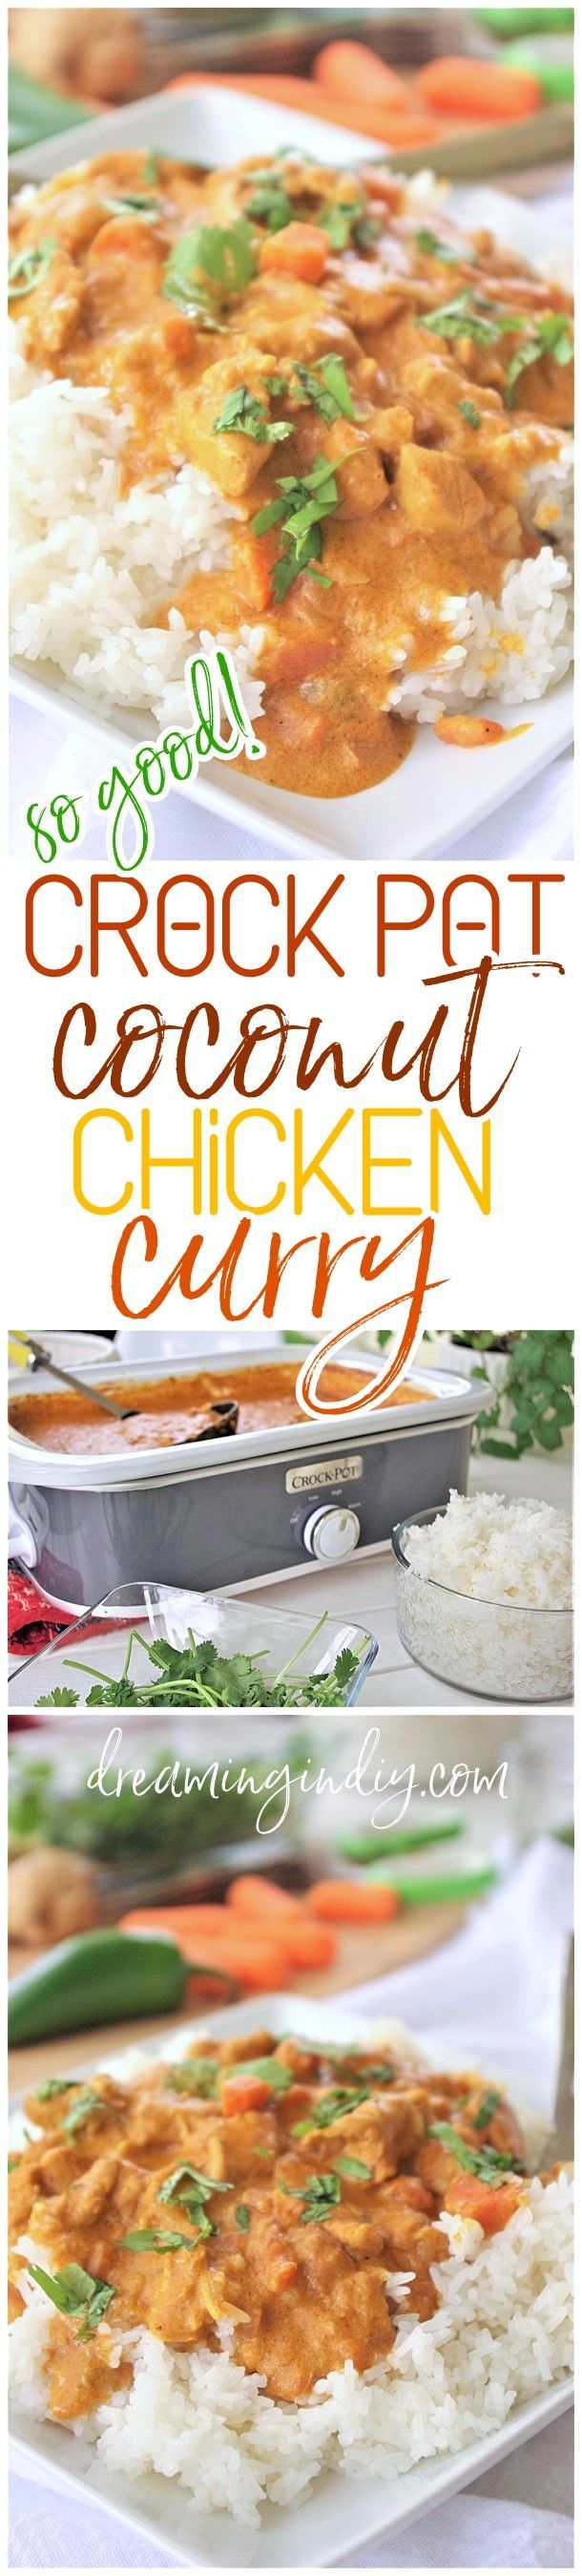 The BEST Easy Coconut Curry Crockpot Chicken Family Dinner Recipe - Yummy Slow Cooker Meal Prep by Dreaming in DIY - This AMAZING Thai inspired popular dish is easy to make in the crock pot with so much depth of flavor! This is going to be your favorite new way to make coconut chicken curry for your family at home in your trusty slow cooker. #crockpotcurry #coconutchickencurry #slowcookerrecipes